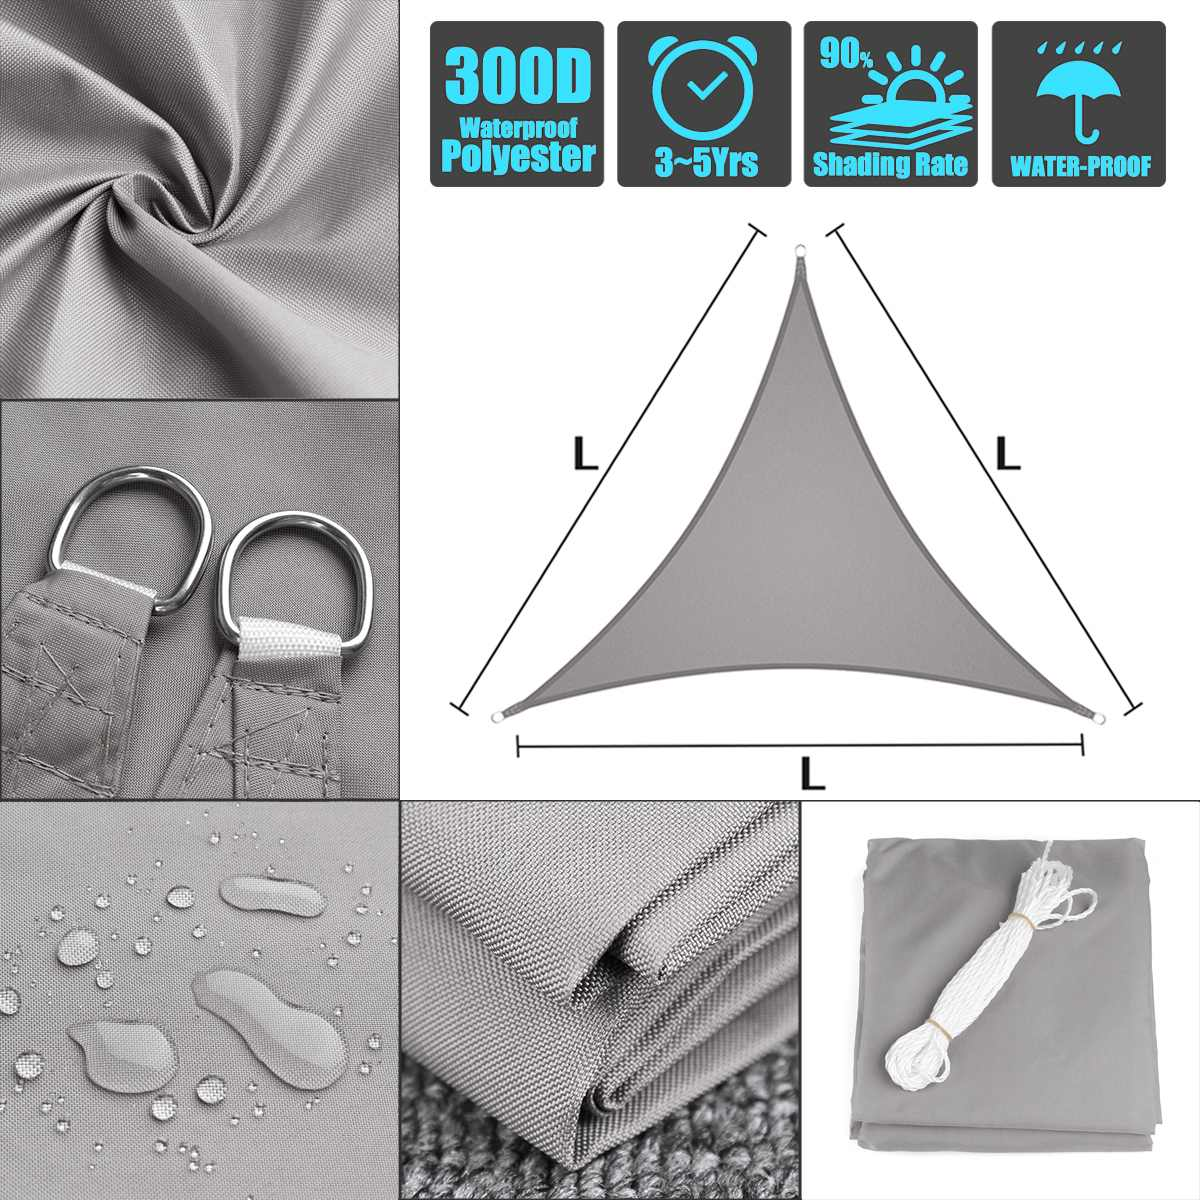 Waterproof polyester fabric - oxford equilateral triangle grey 3x3x3 4x4x4 5x5x5 shade sailWaterproof polyester fabric - oxford equilateral triangle grey 3x3x3 4x4x4 5x5x5 shade sail